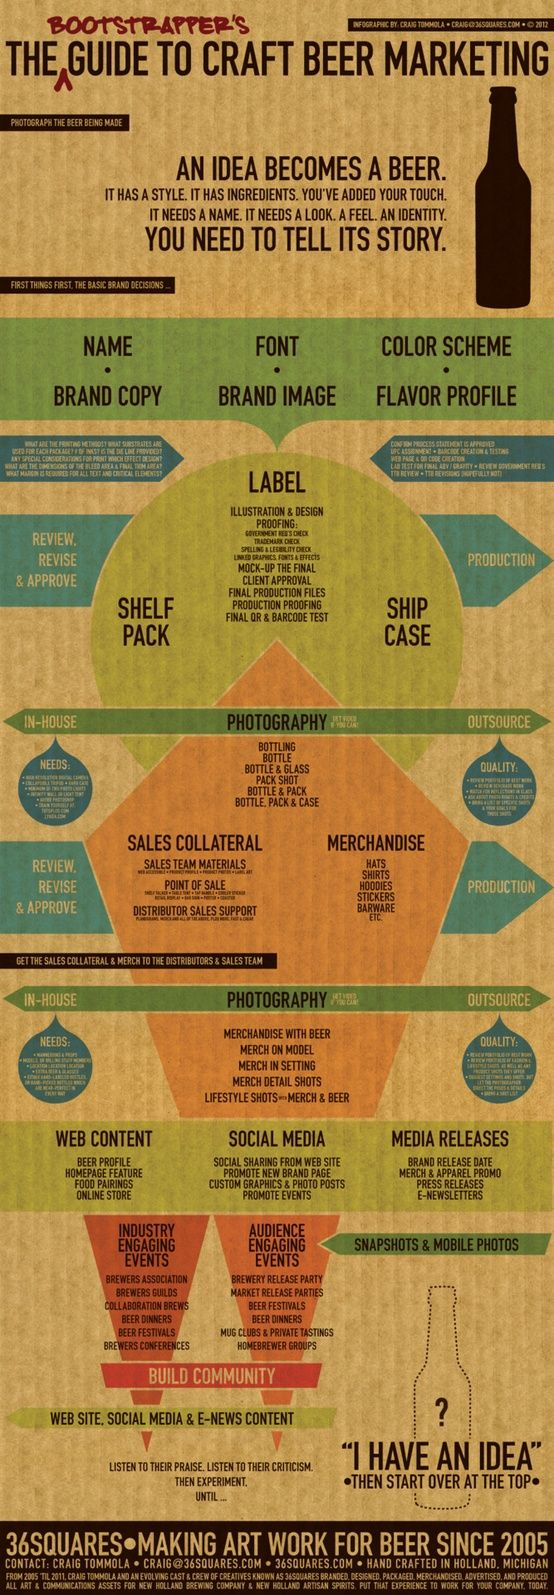 The Guide to Craft Beer Marketing